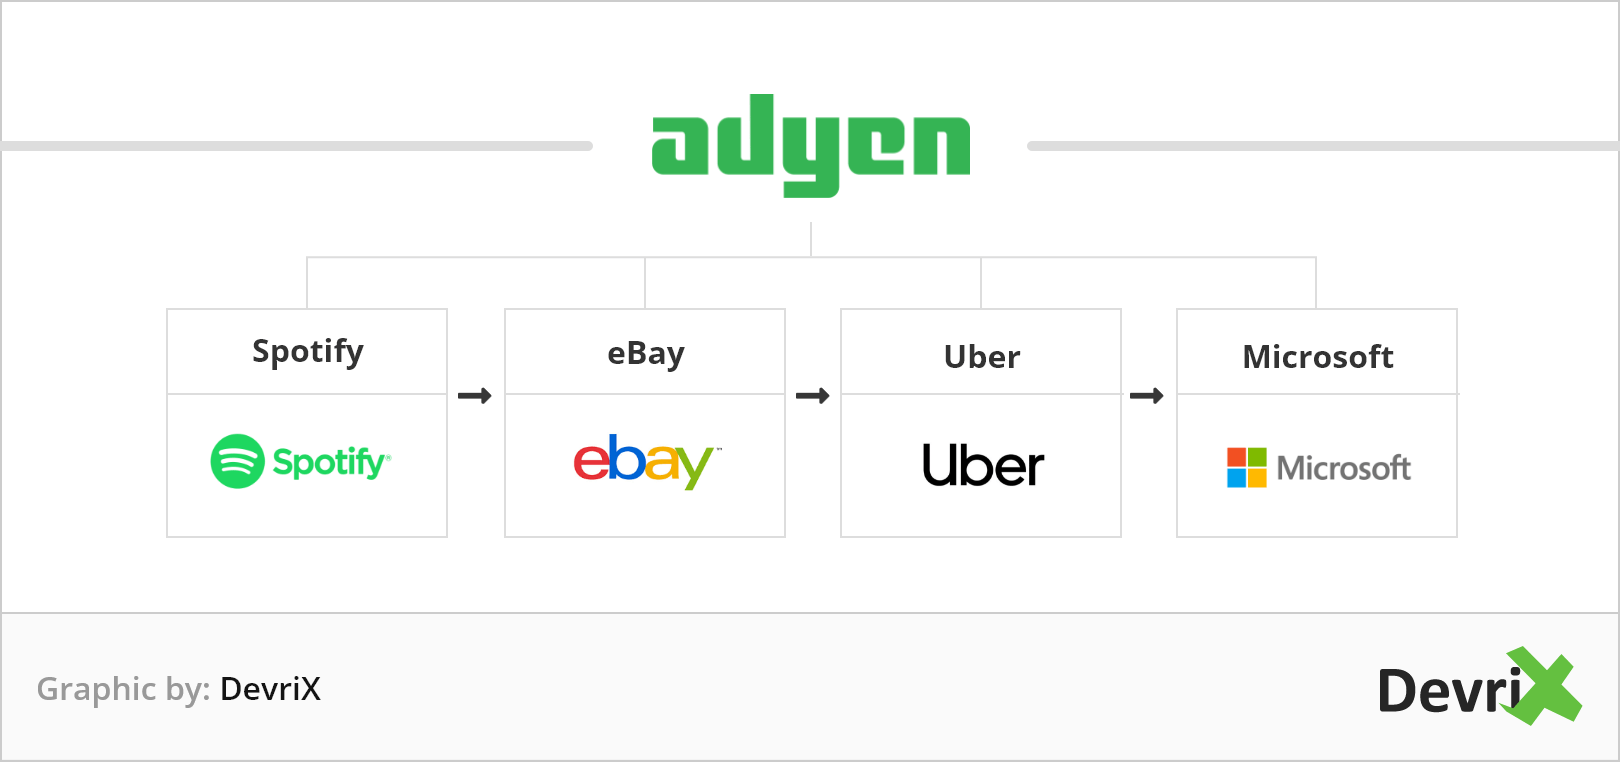 Adyen is associated with